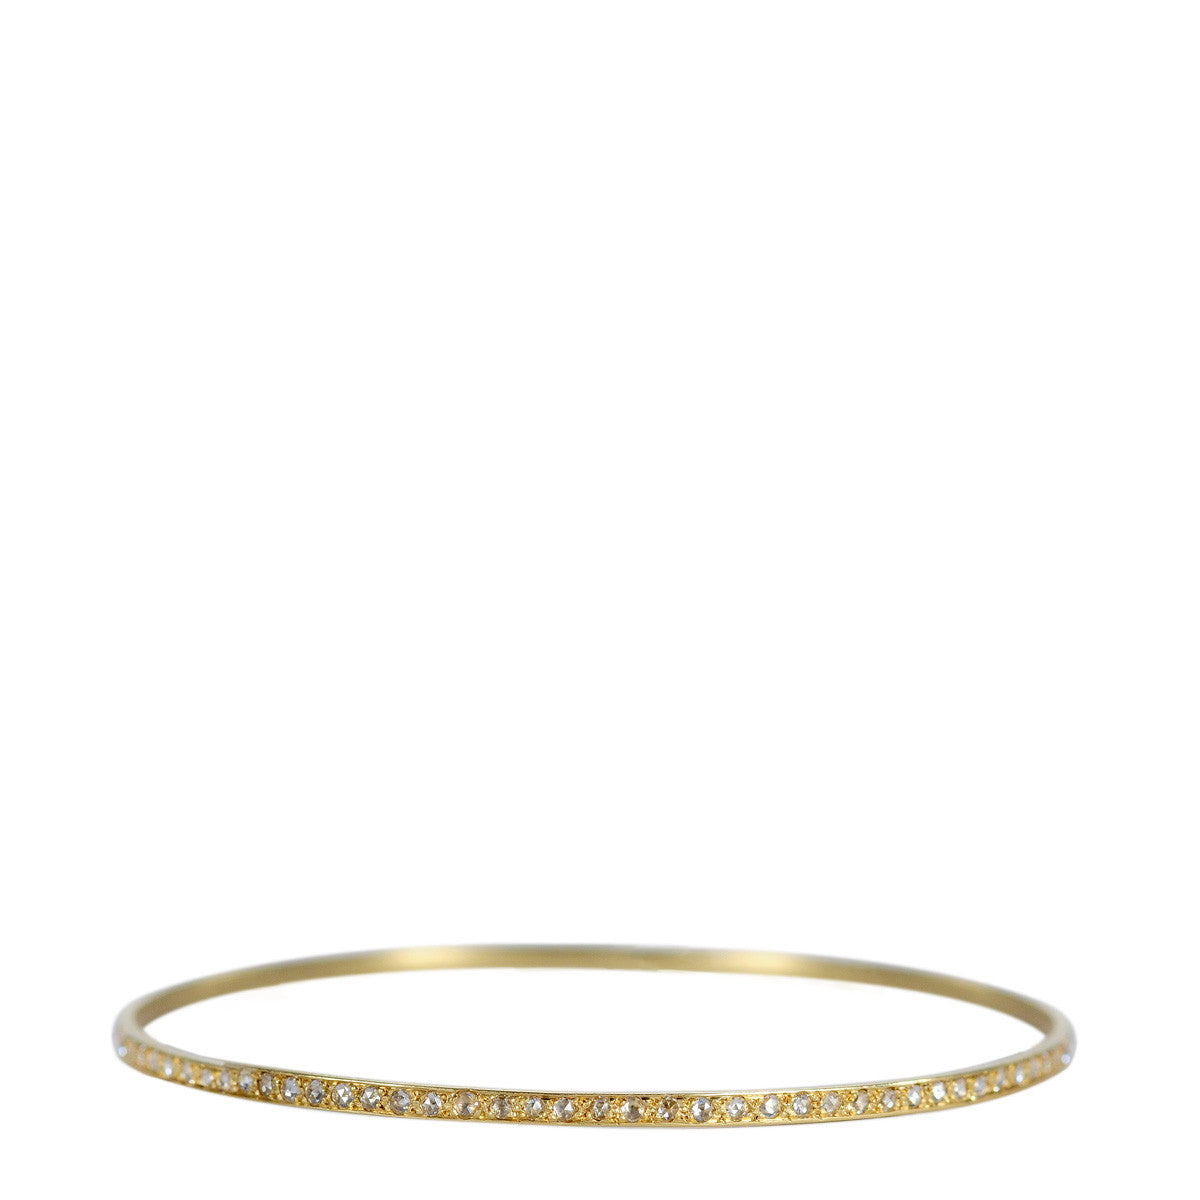 18K Gold Pave Diamond Bangle